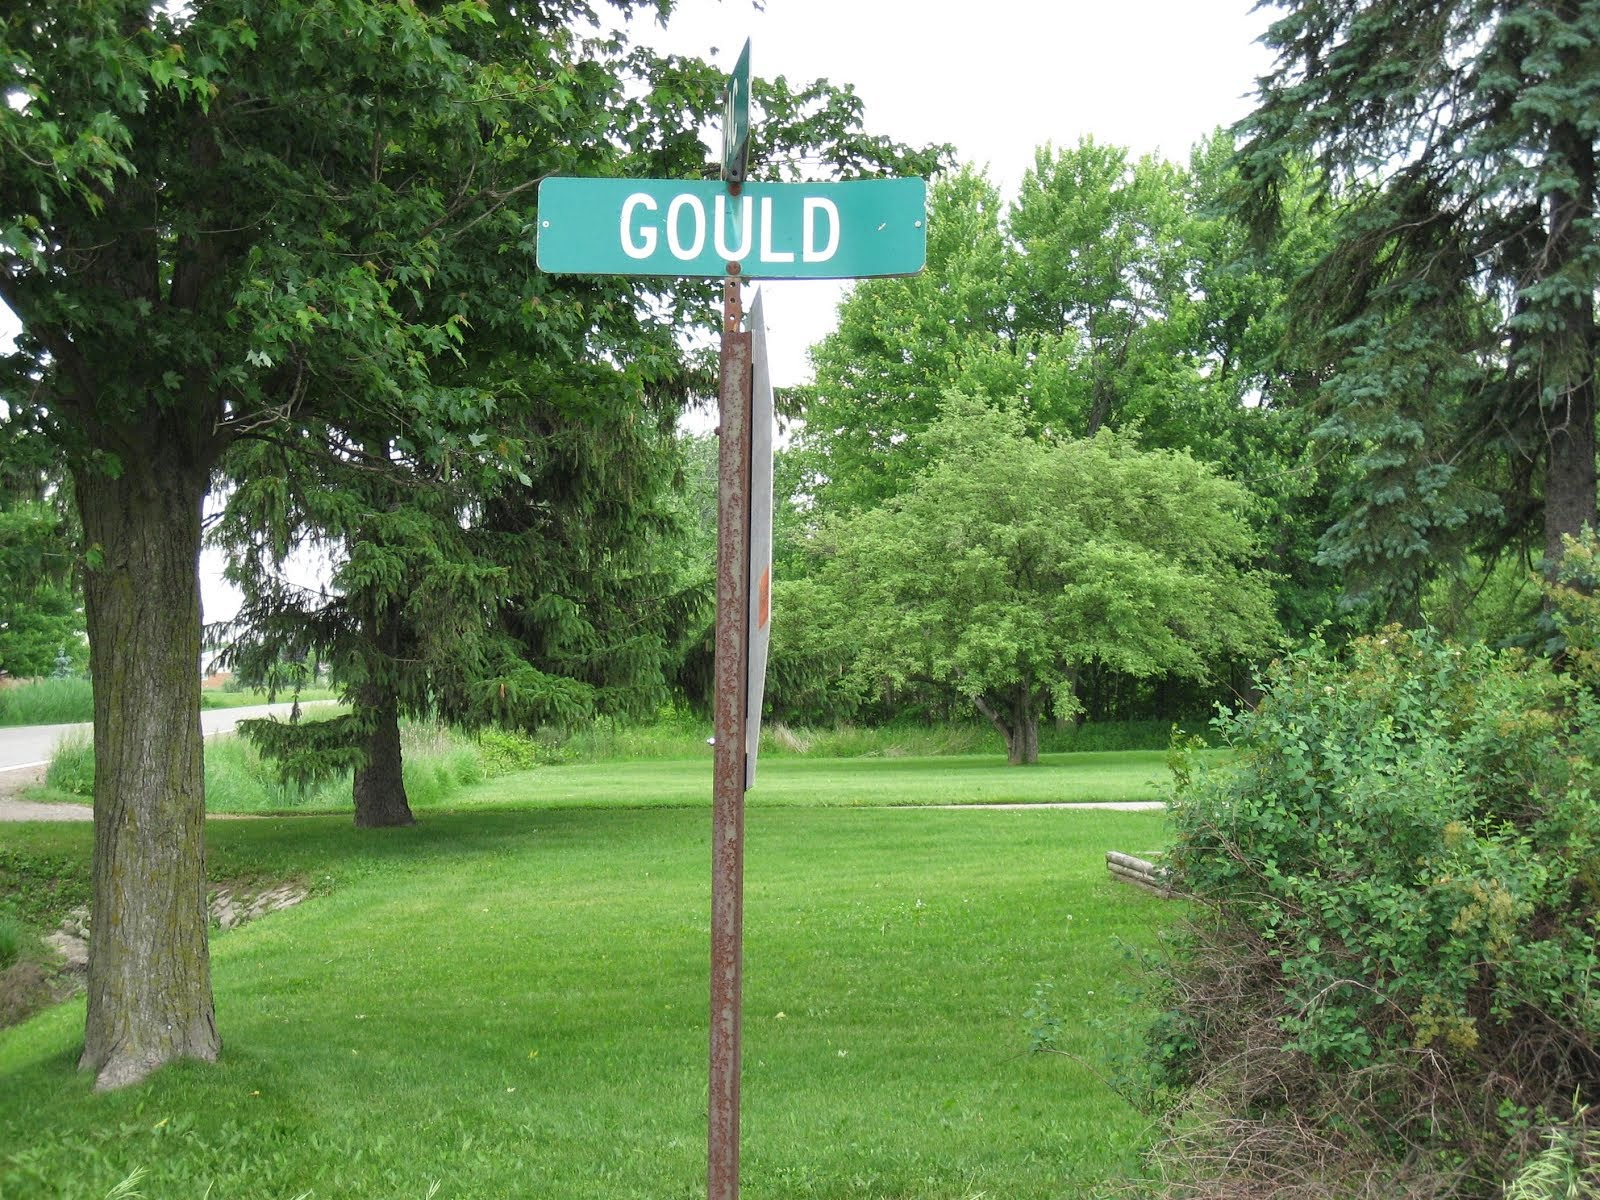 GOULD RD. IN ARMADA, MICHIGAN